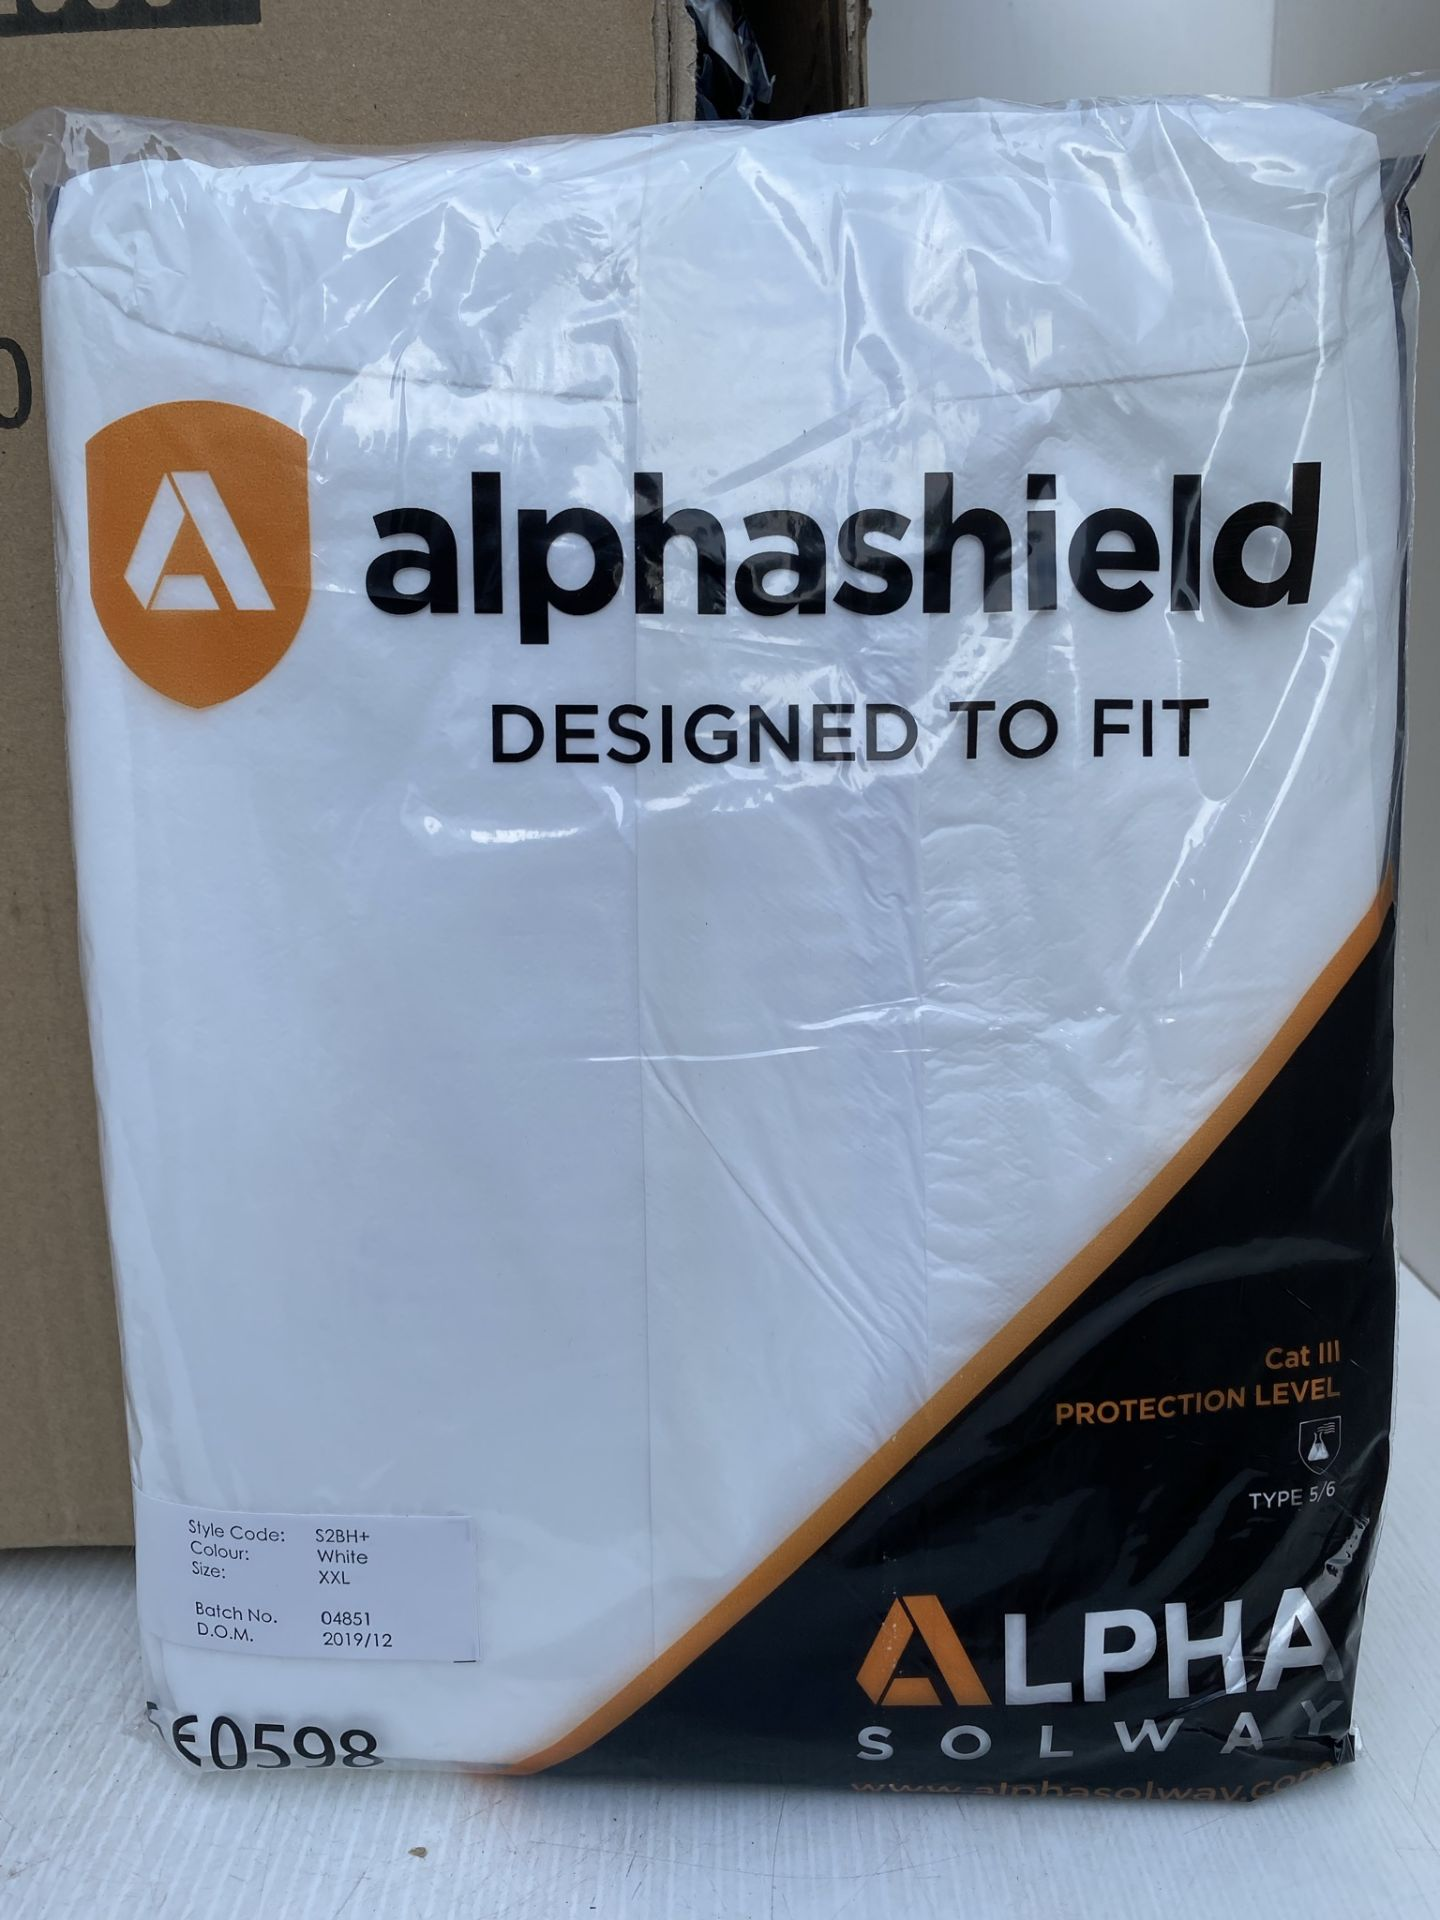 50 x Alpha Solway - Alphashield 2000+ protective S2BH+ white oversuits - Assorted sizes,